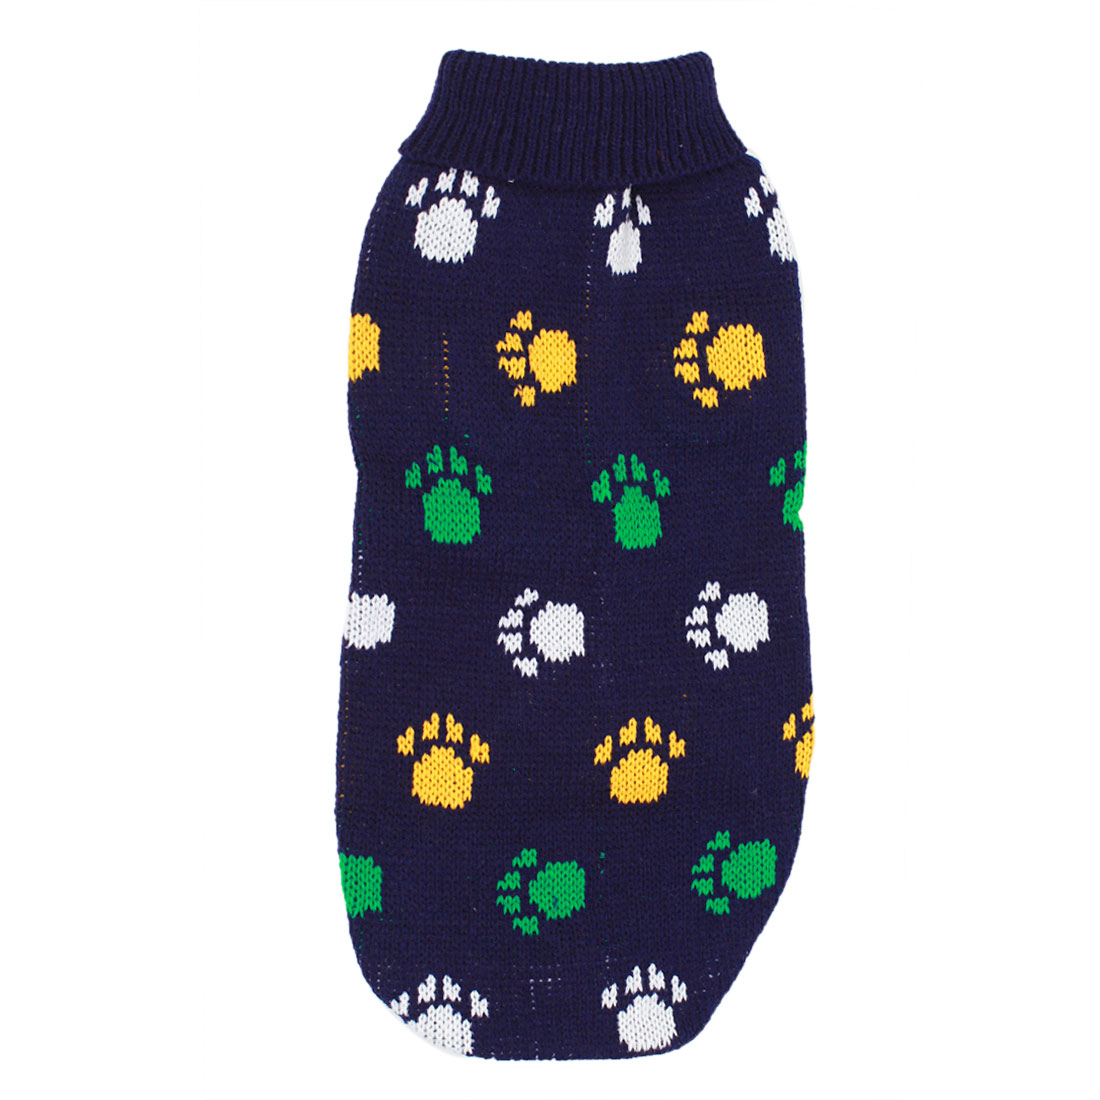 Pet Dog Puppy Claw Pattern Ribbed Cuff Knitwear Turtleneck Apparel Coat Sweater Dark Blue Size M